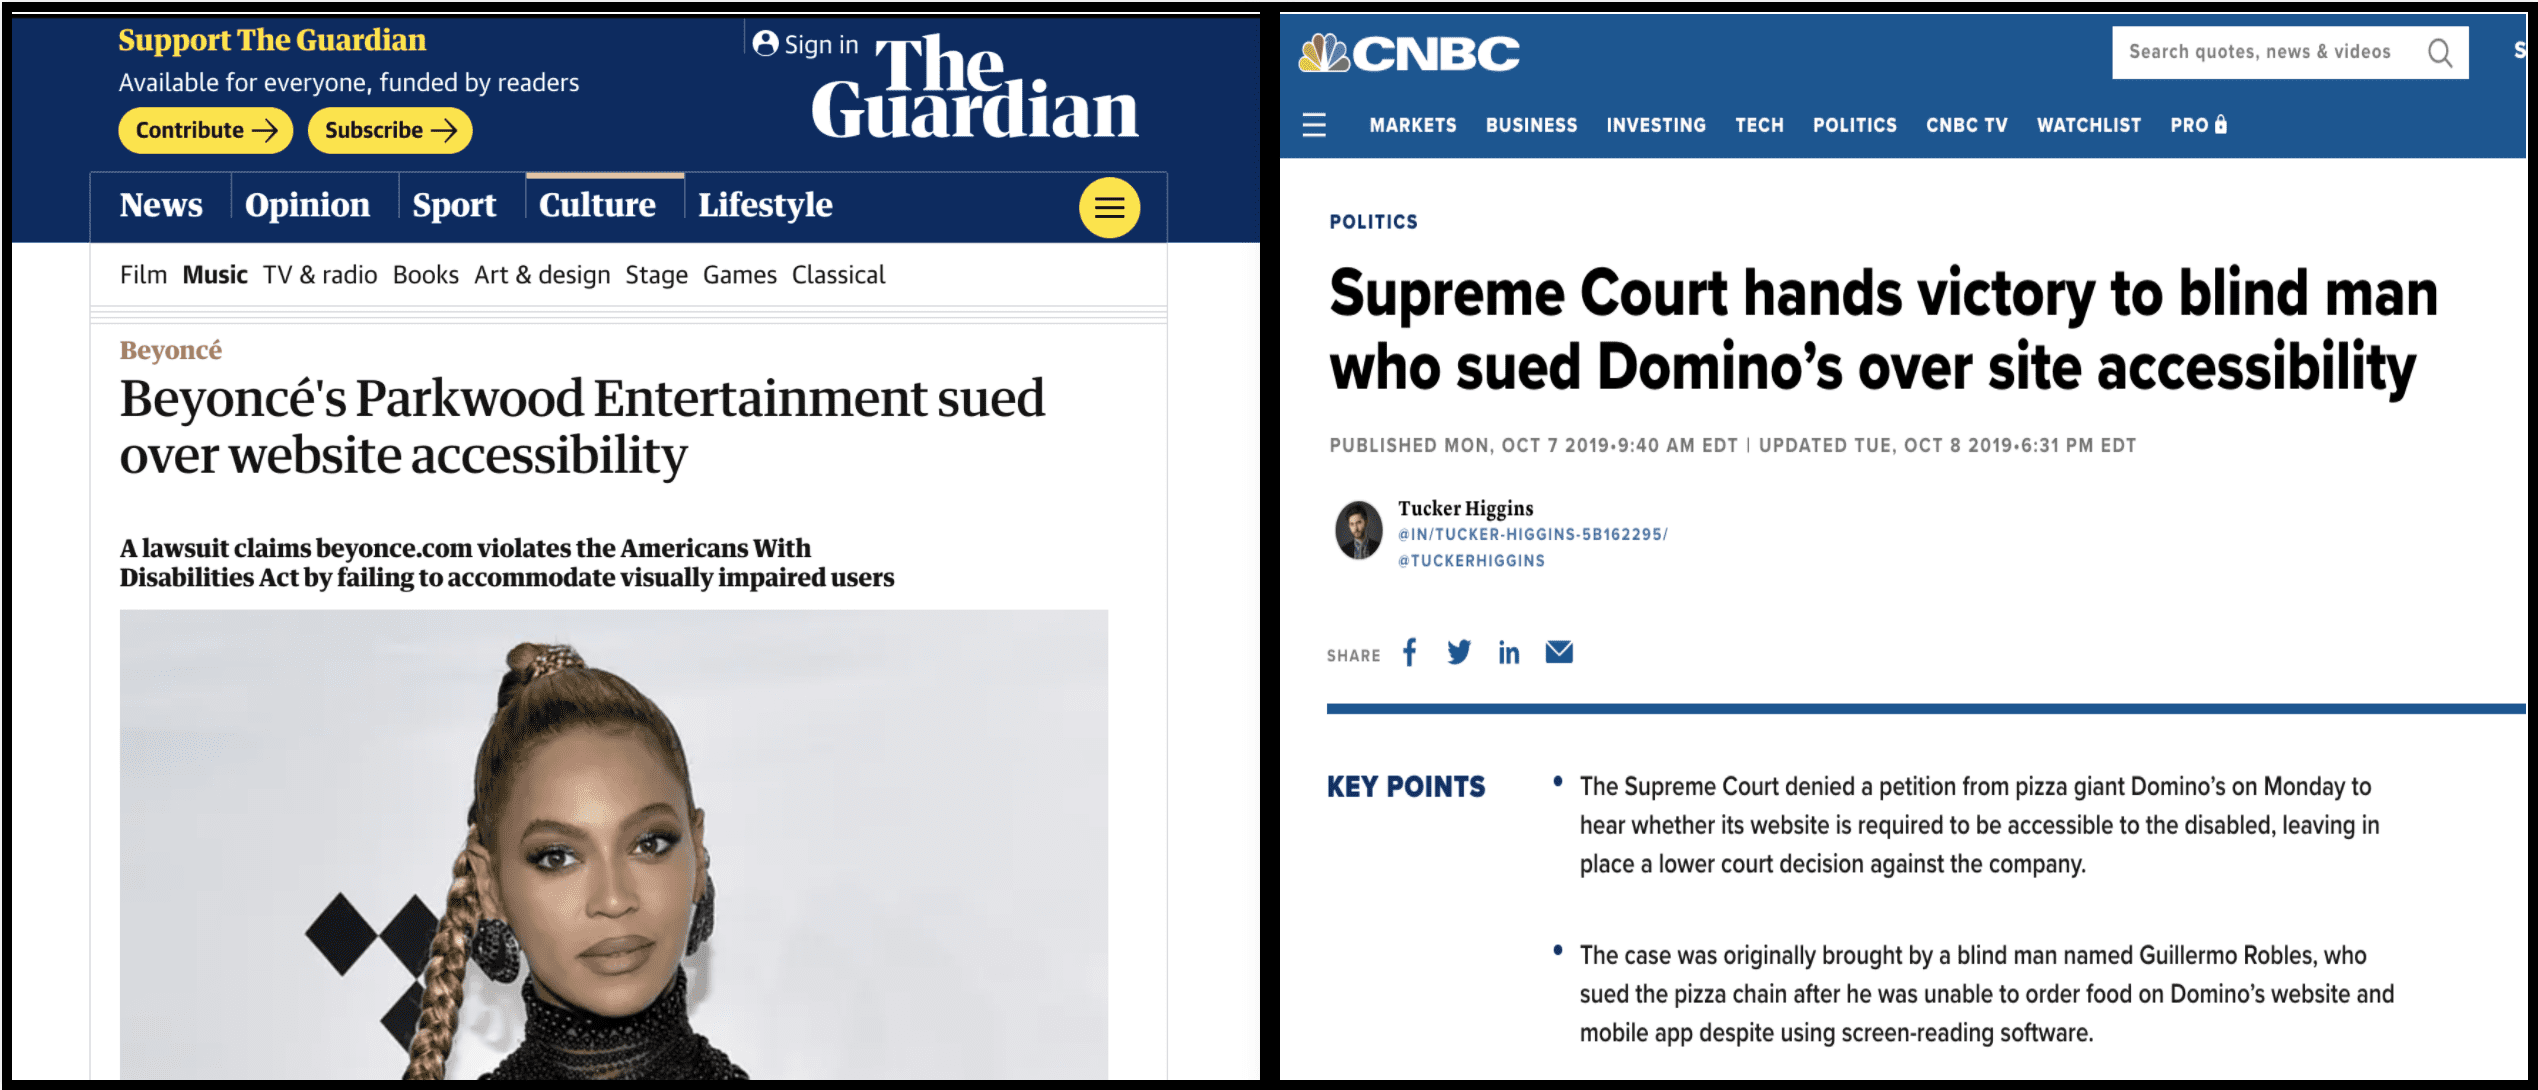 Newspaper article headlines on web accessibility cases